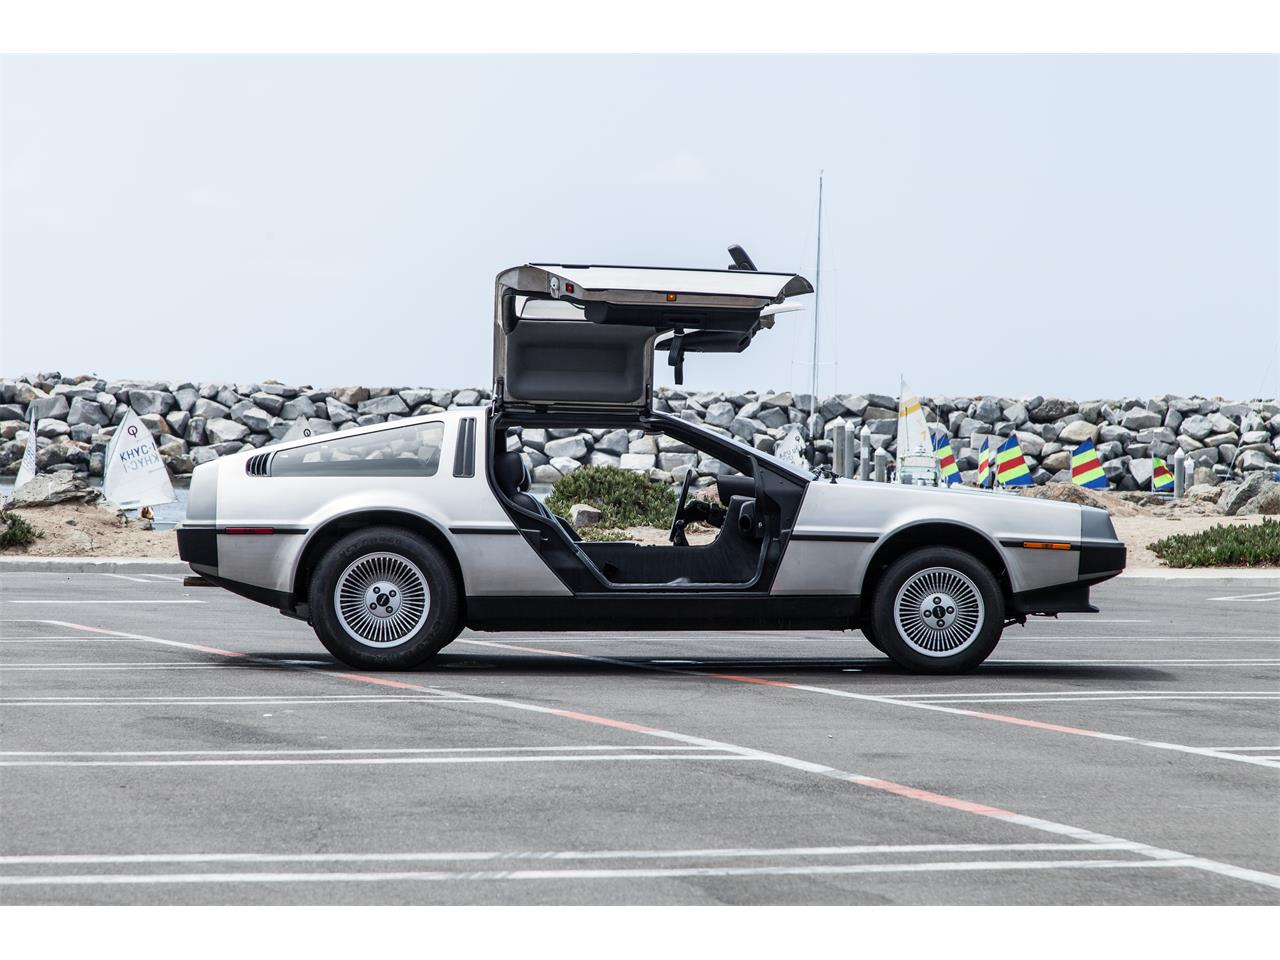 Large Picture of 1981 DeLorean DMC-12 - $54,000.00 Offered by a Private Seller - P3AG